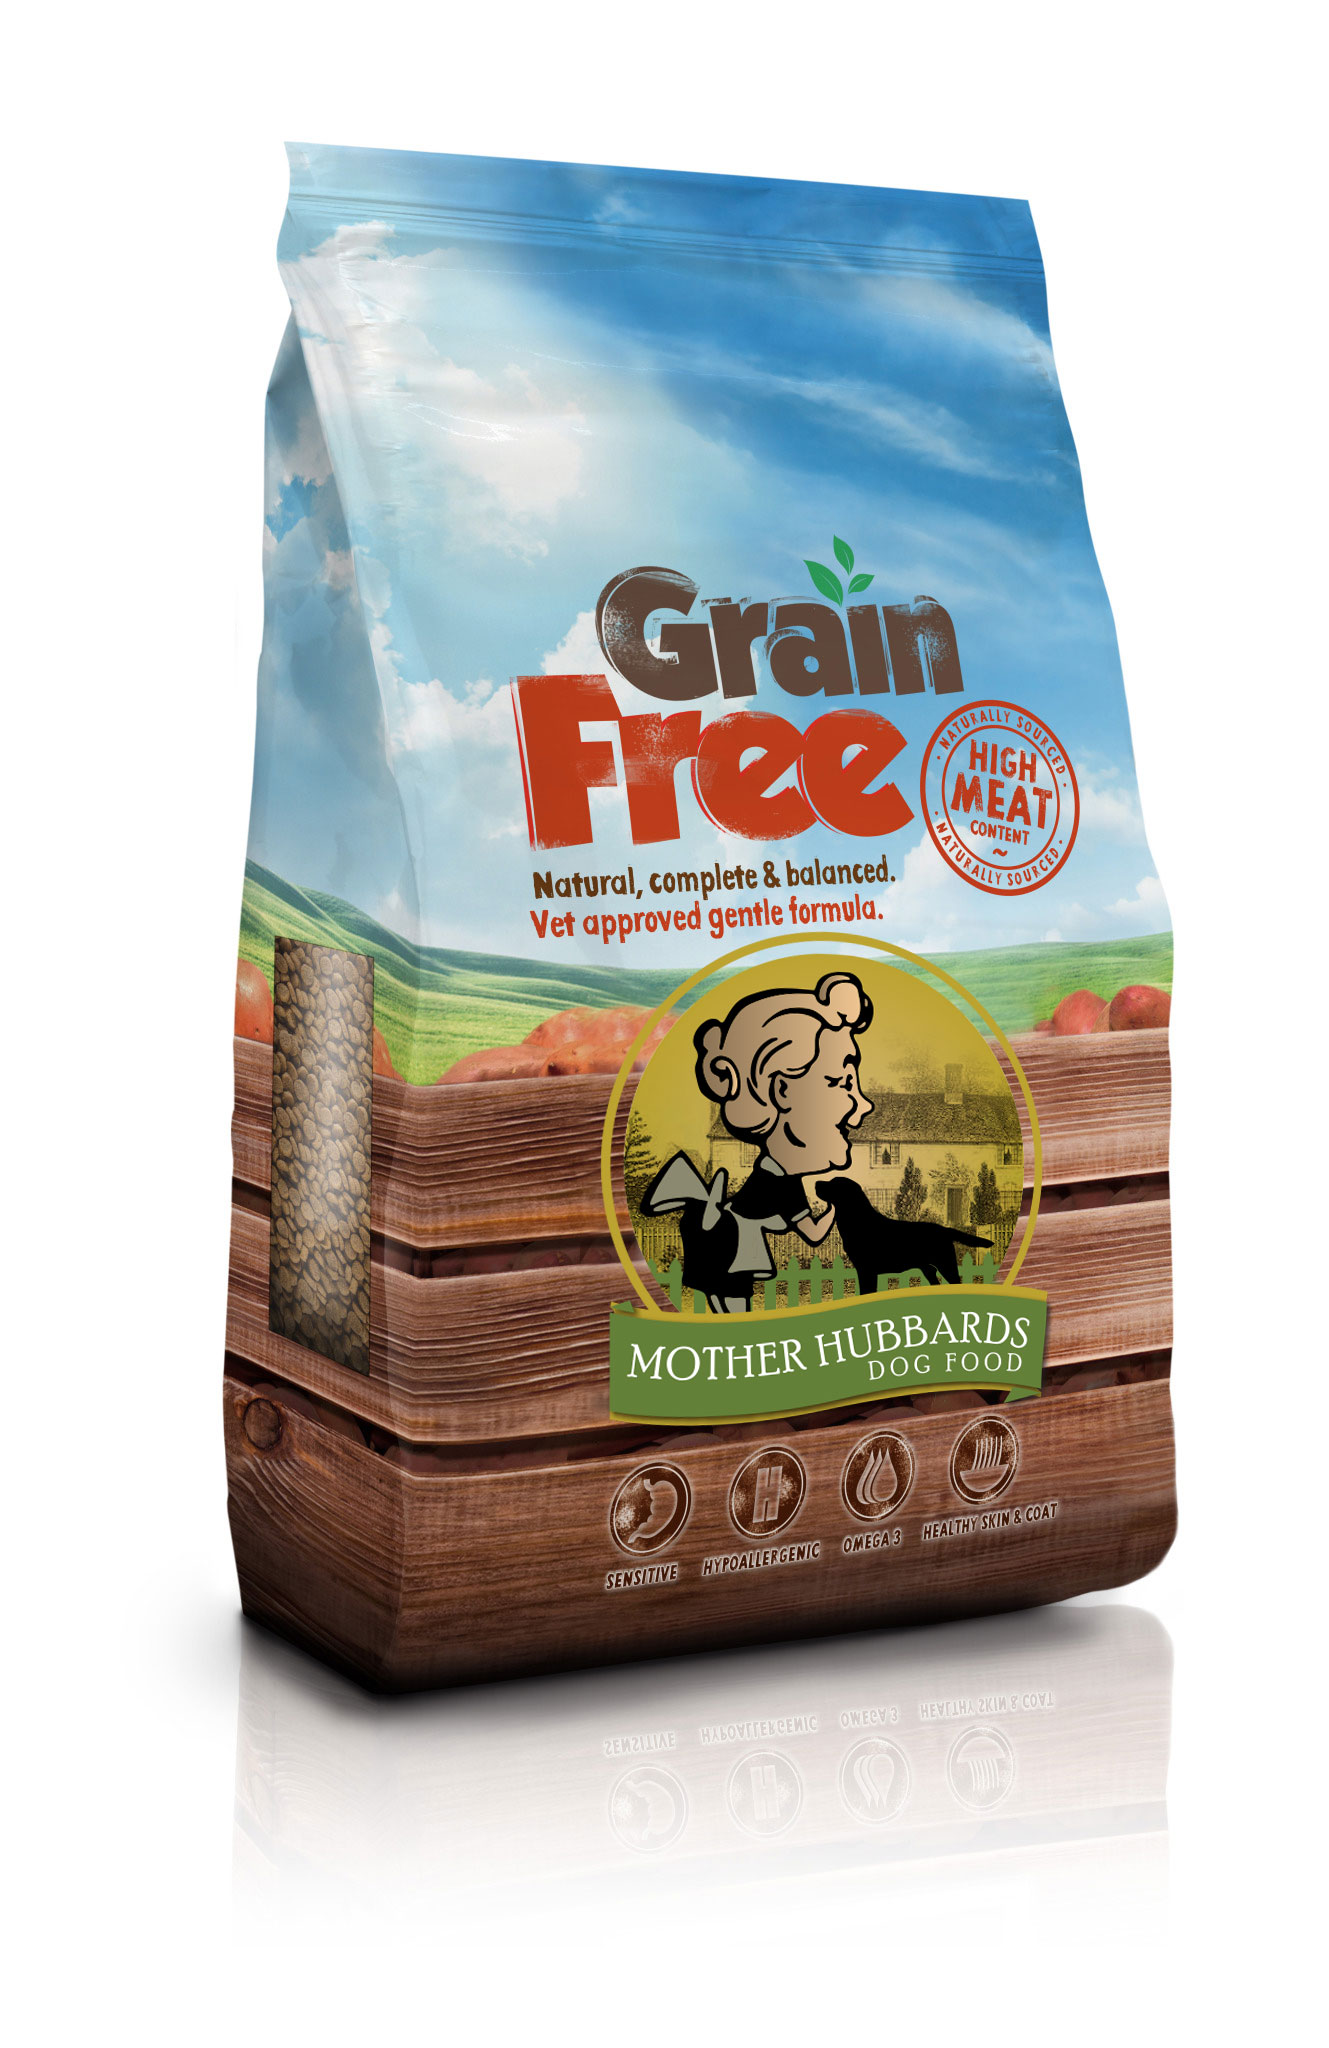 All Natural Grain Free Dry Dog Food